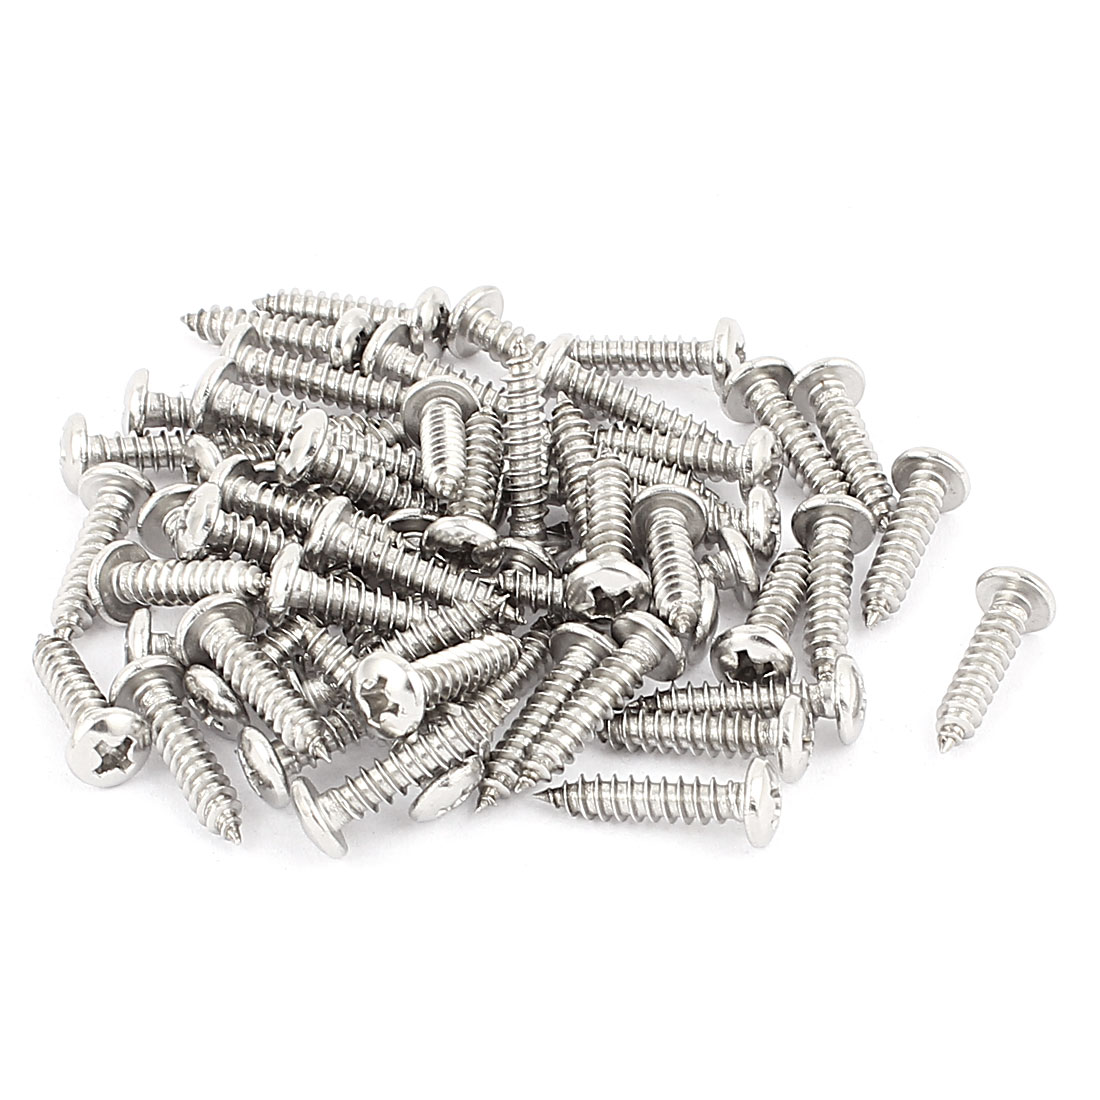 4.2mm x 19mm Pan Head Phillips Self Tapping Screw Fasteners Silver Tone 60 Pcs